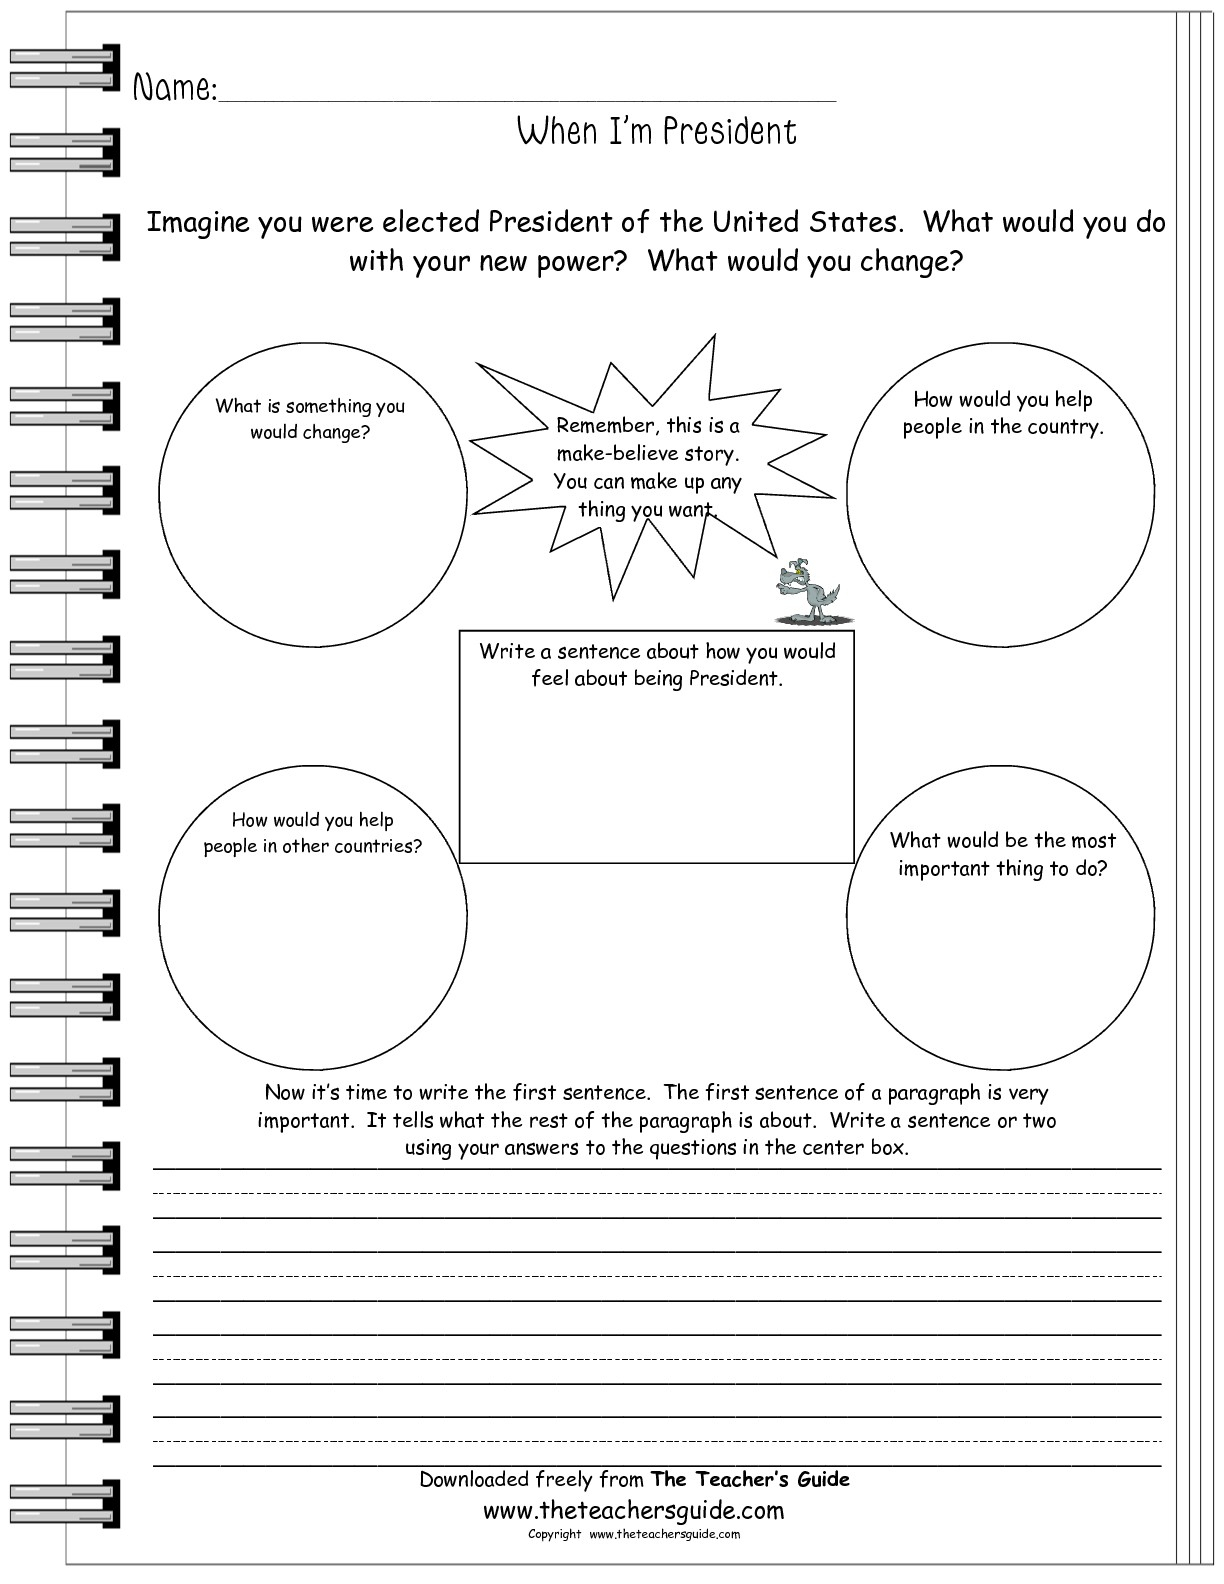 Writing Prompt Worksheets From The Teacher's Guide | If I Were President Printable Worksheet